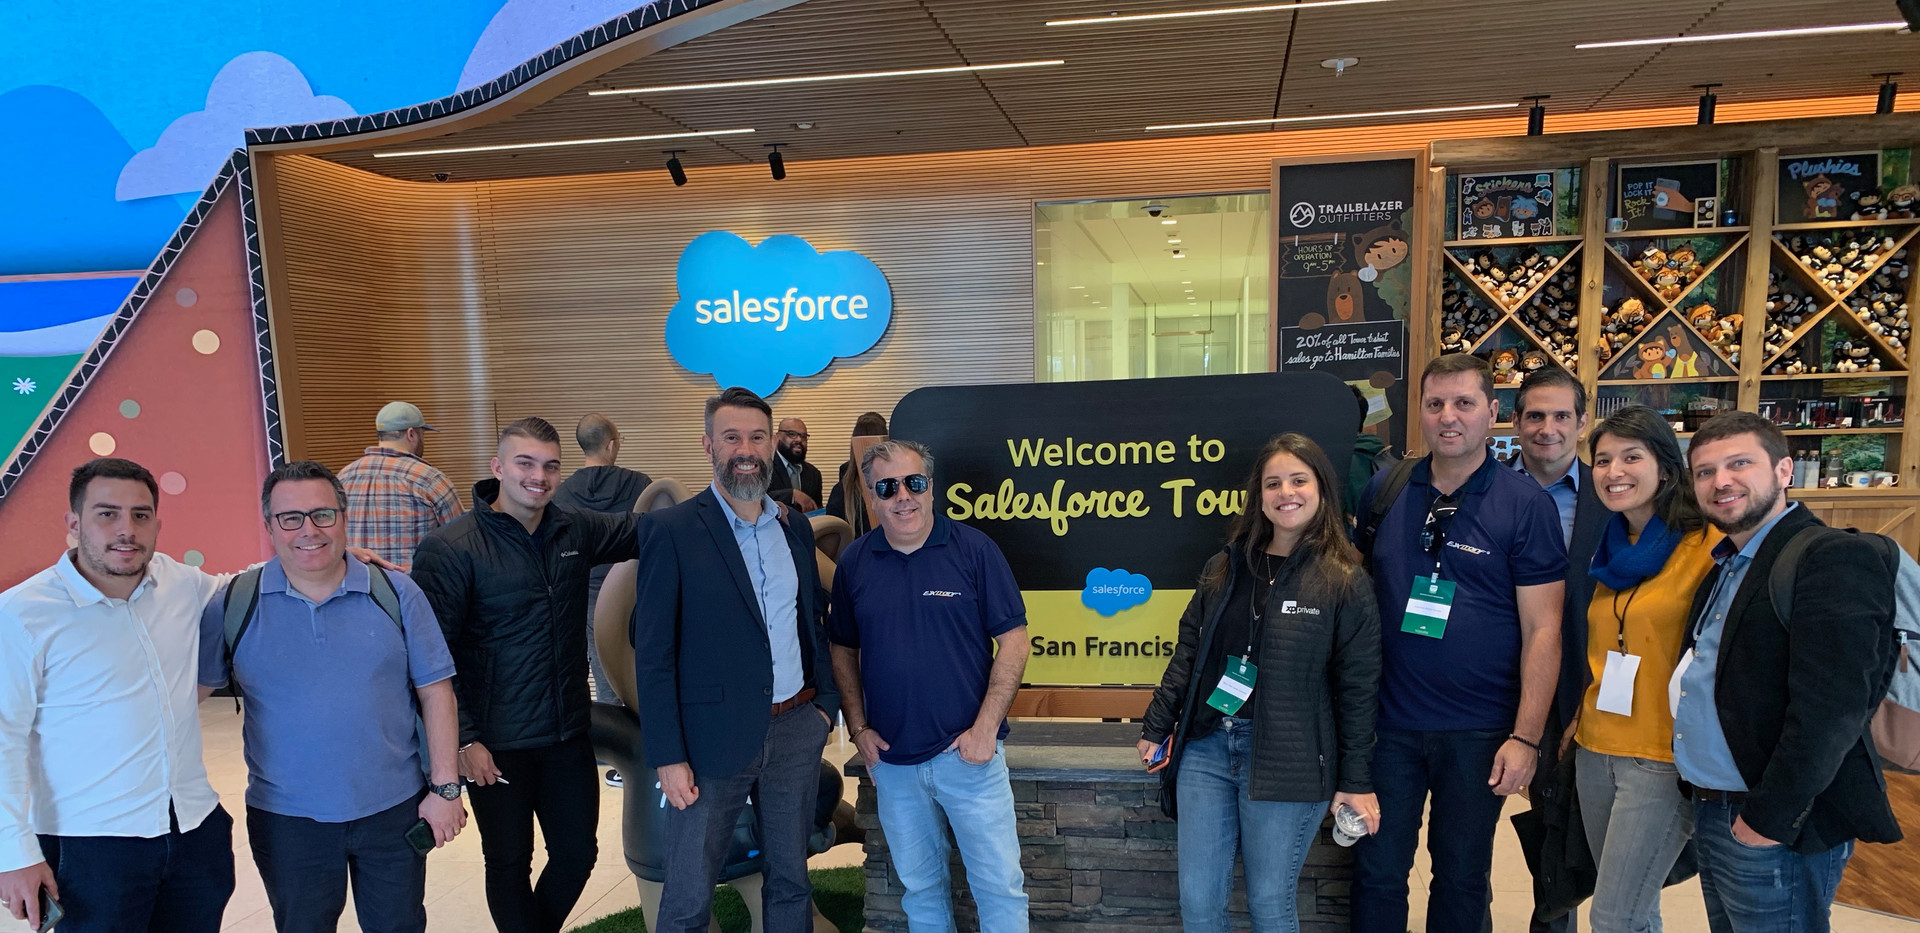 Grupo no Salesforce Tower.